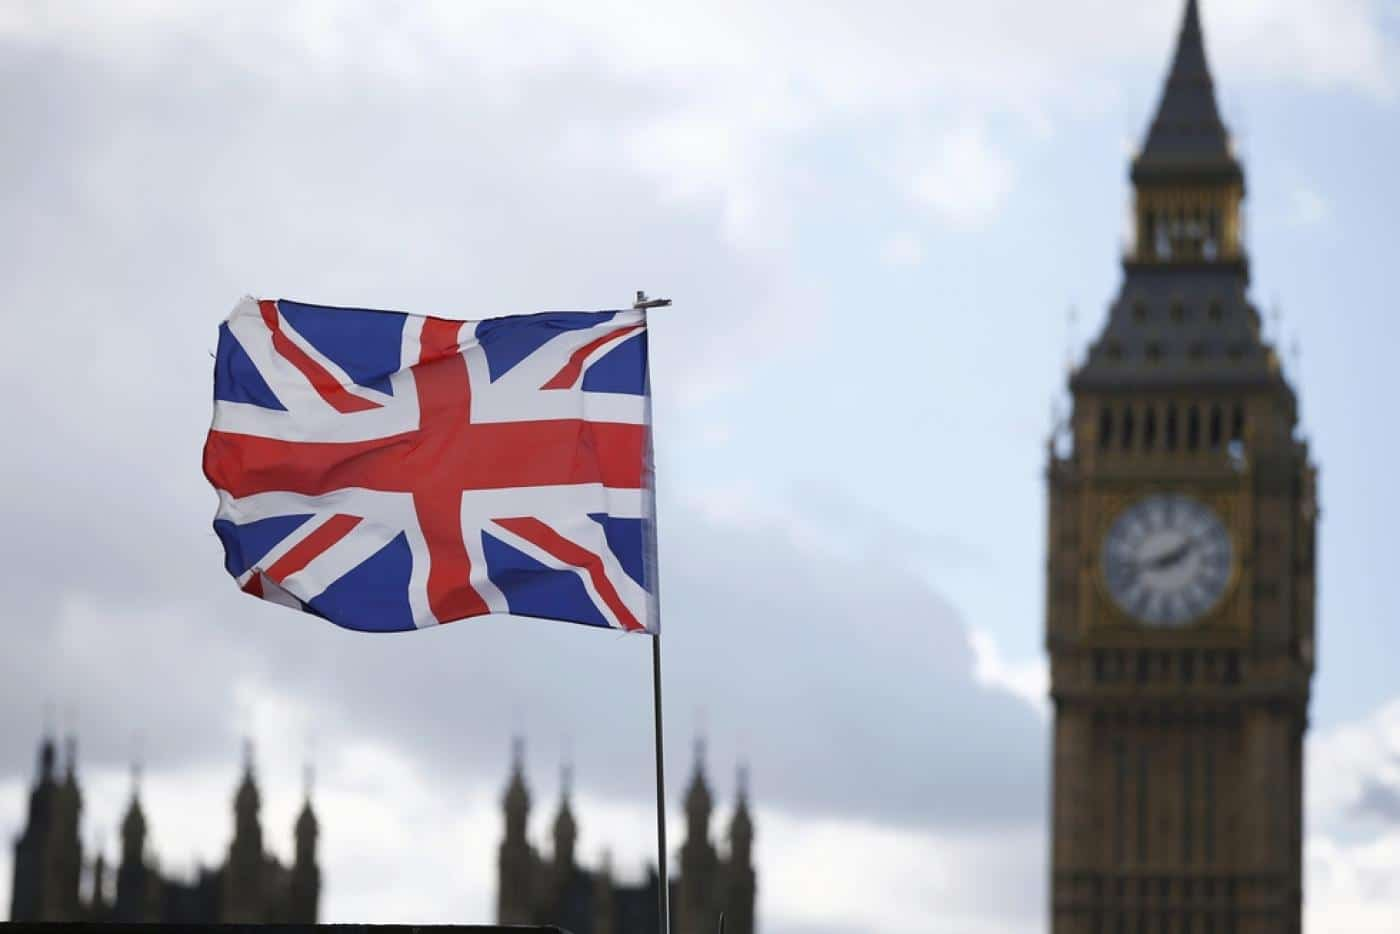 British counterterrorism bill takes the country further down a dangerous road   Middle East Eye